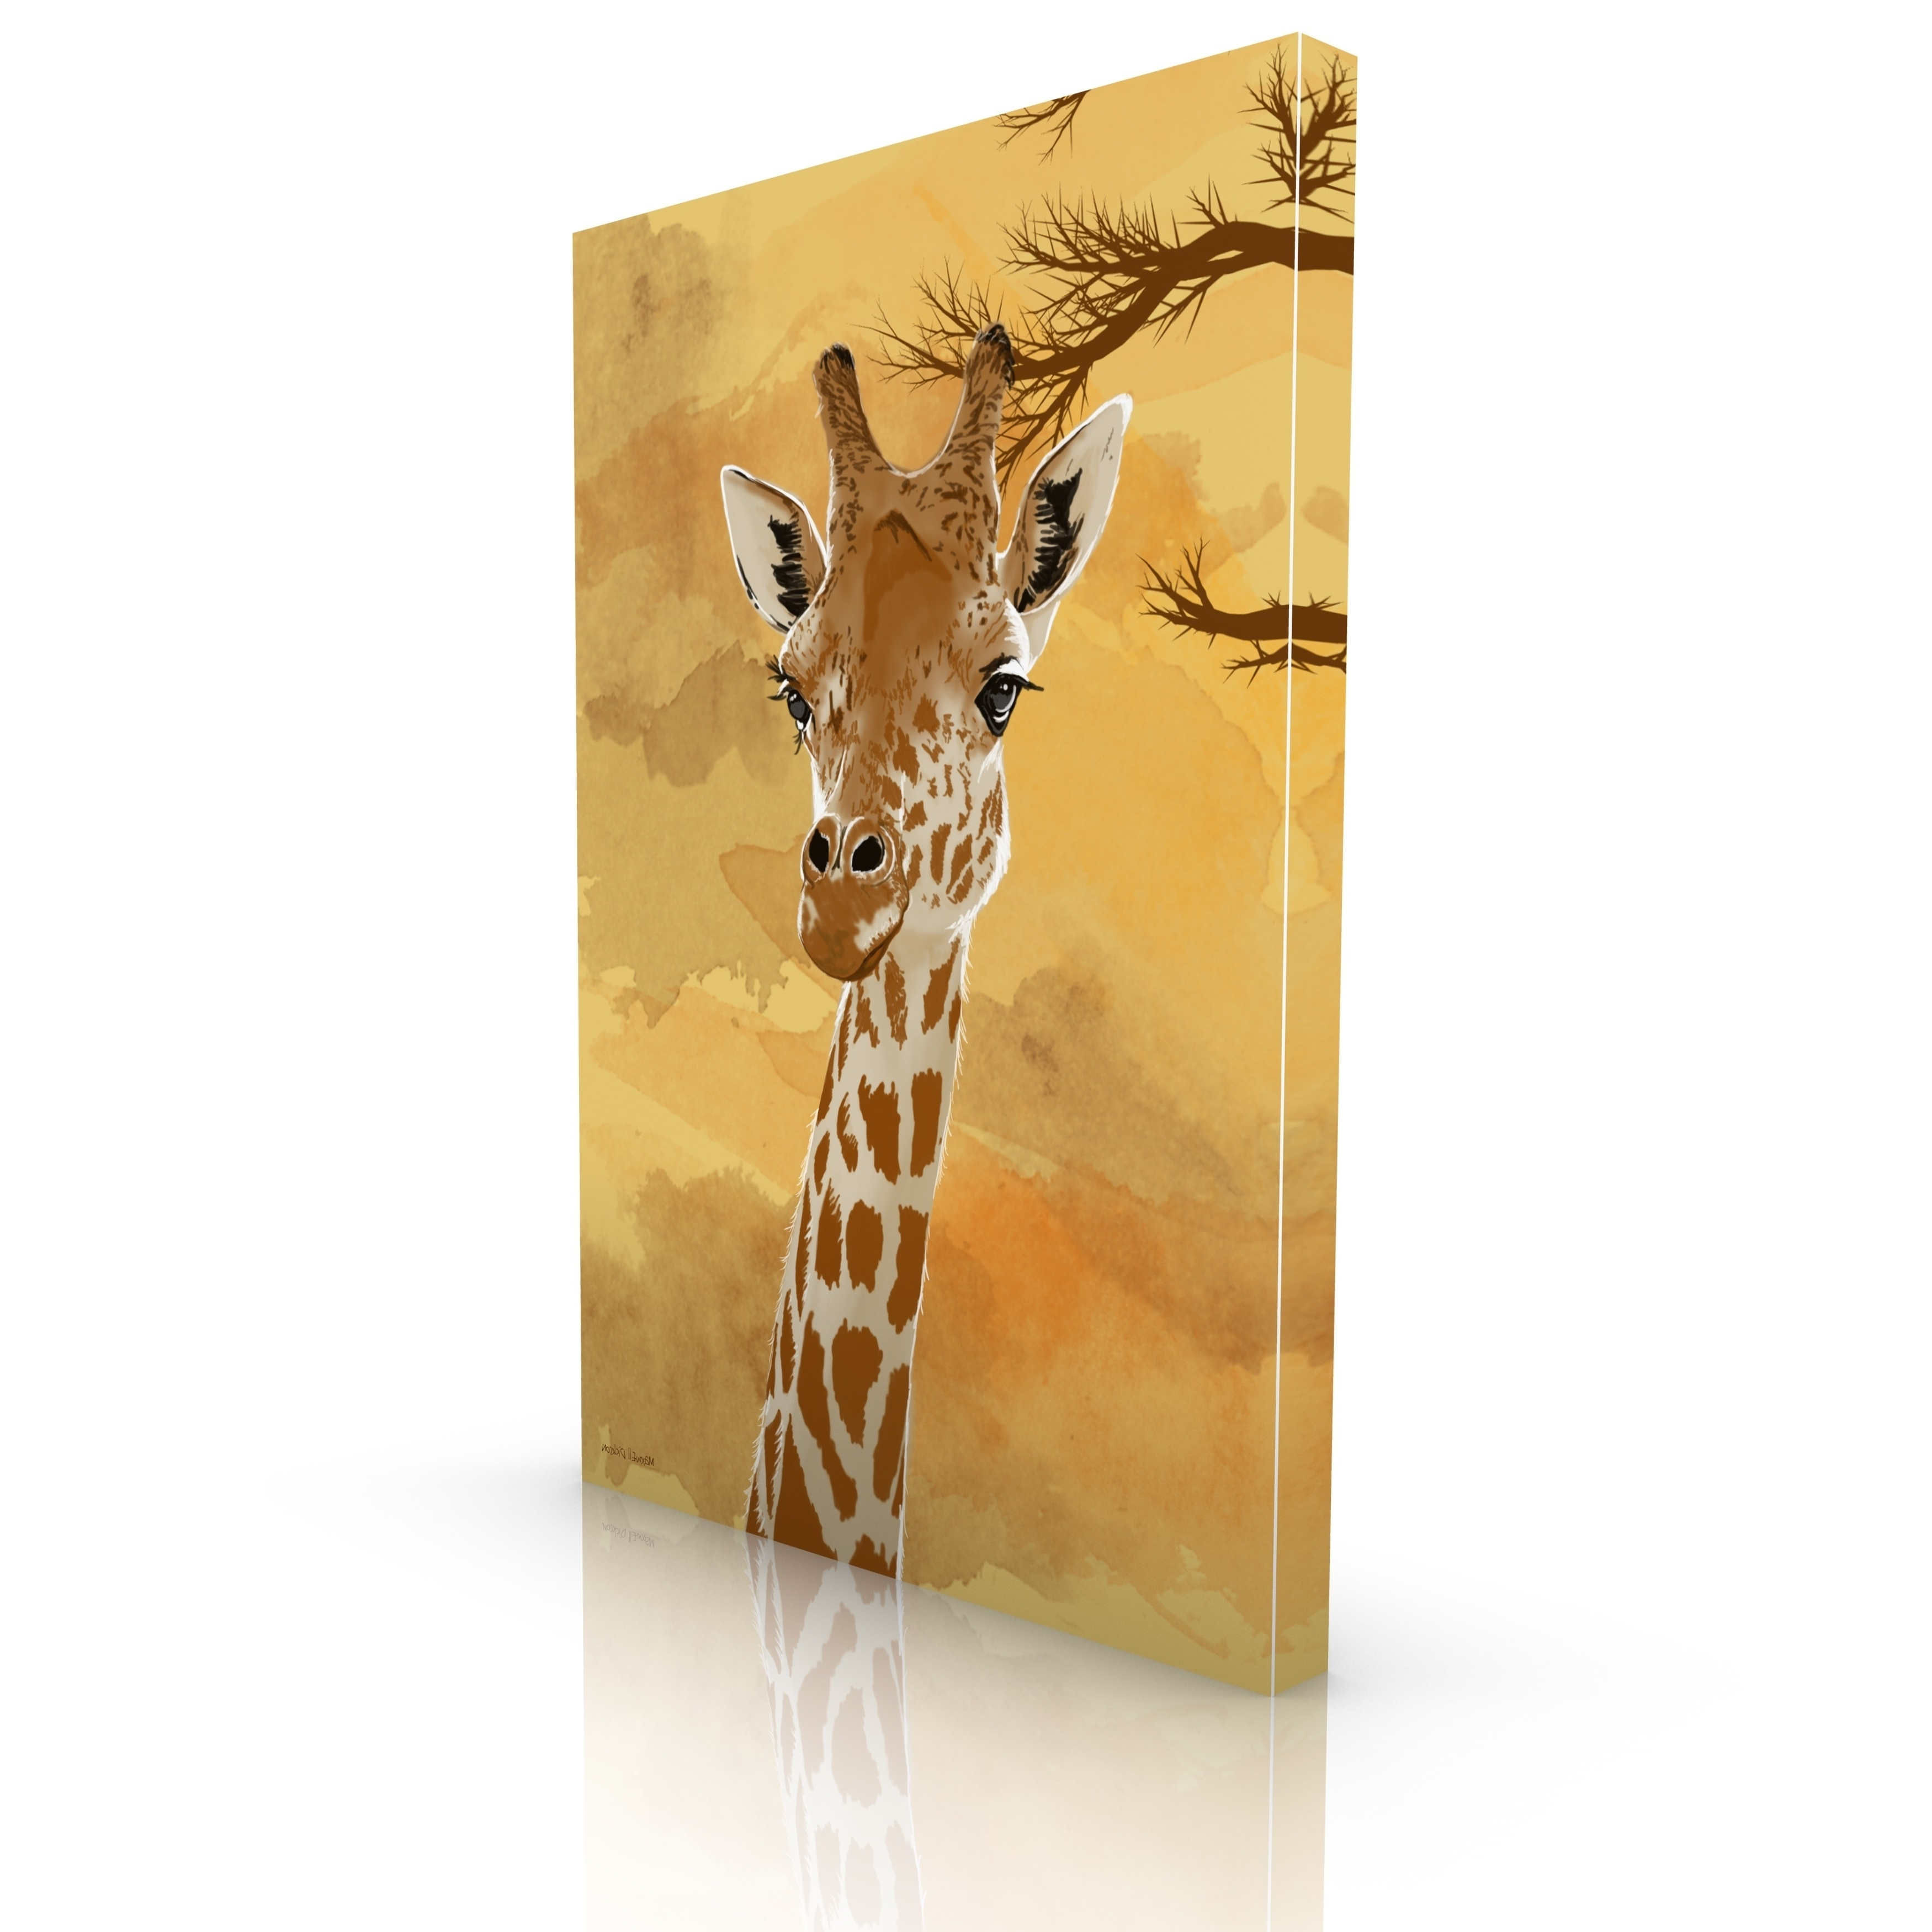 Most Popular Giraffe Canvas Wall Art Pertaining To Maxwell Dickson 'giraffe' Canvas Wall Art – Free Shipping Today (View 13 of 15)